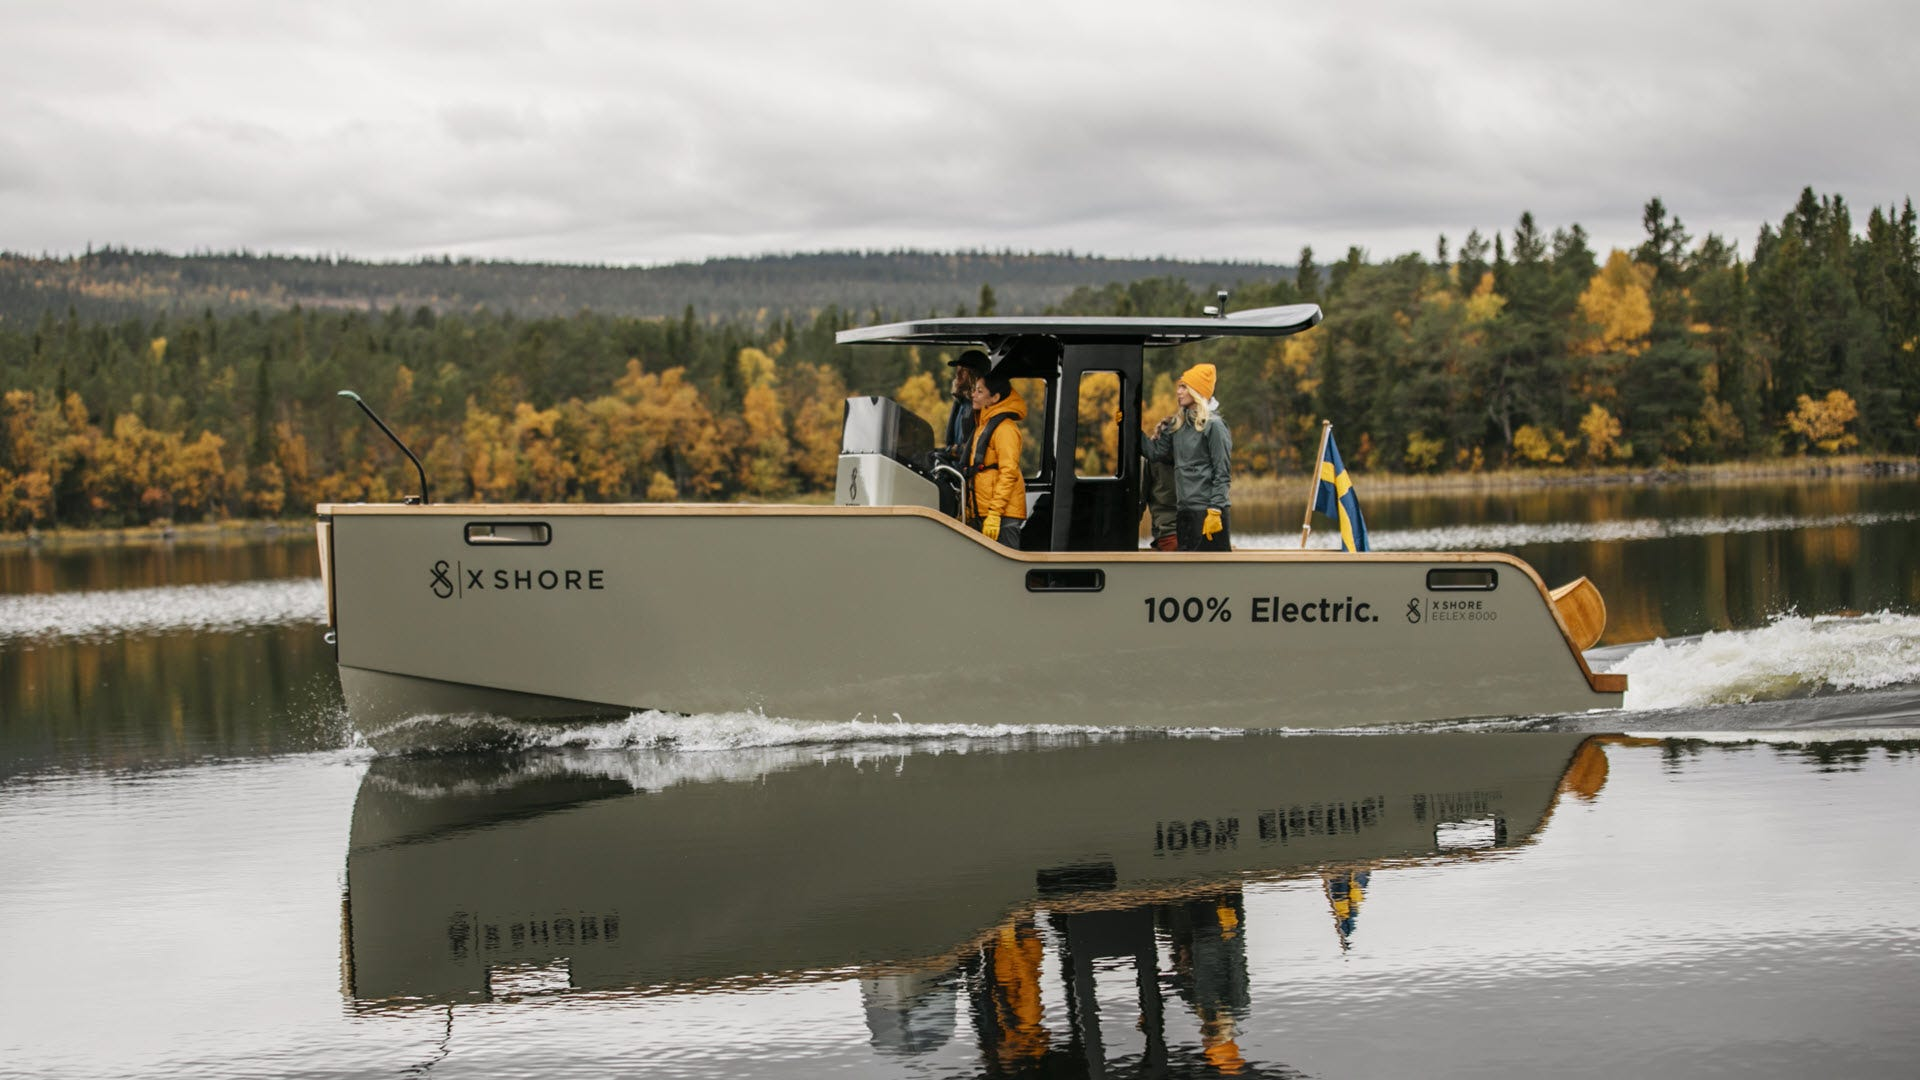 Full sideview of an electric boat.